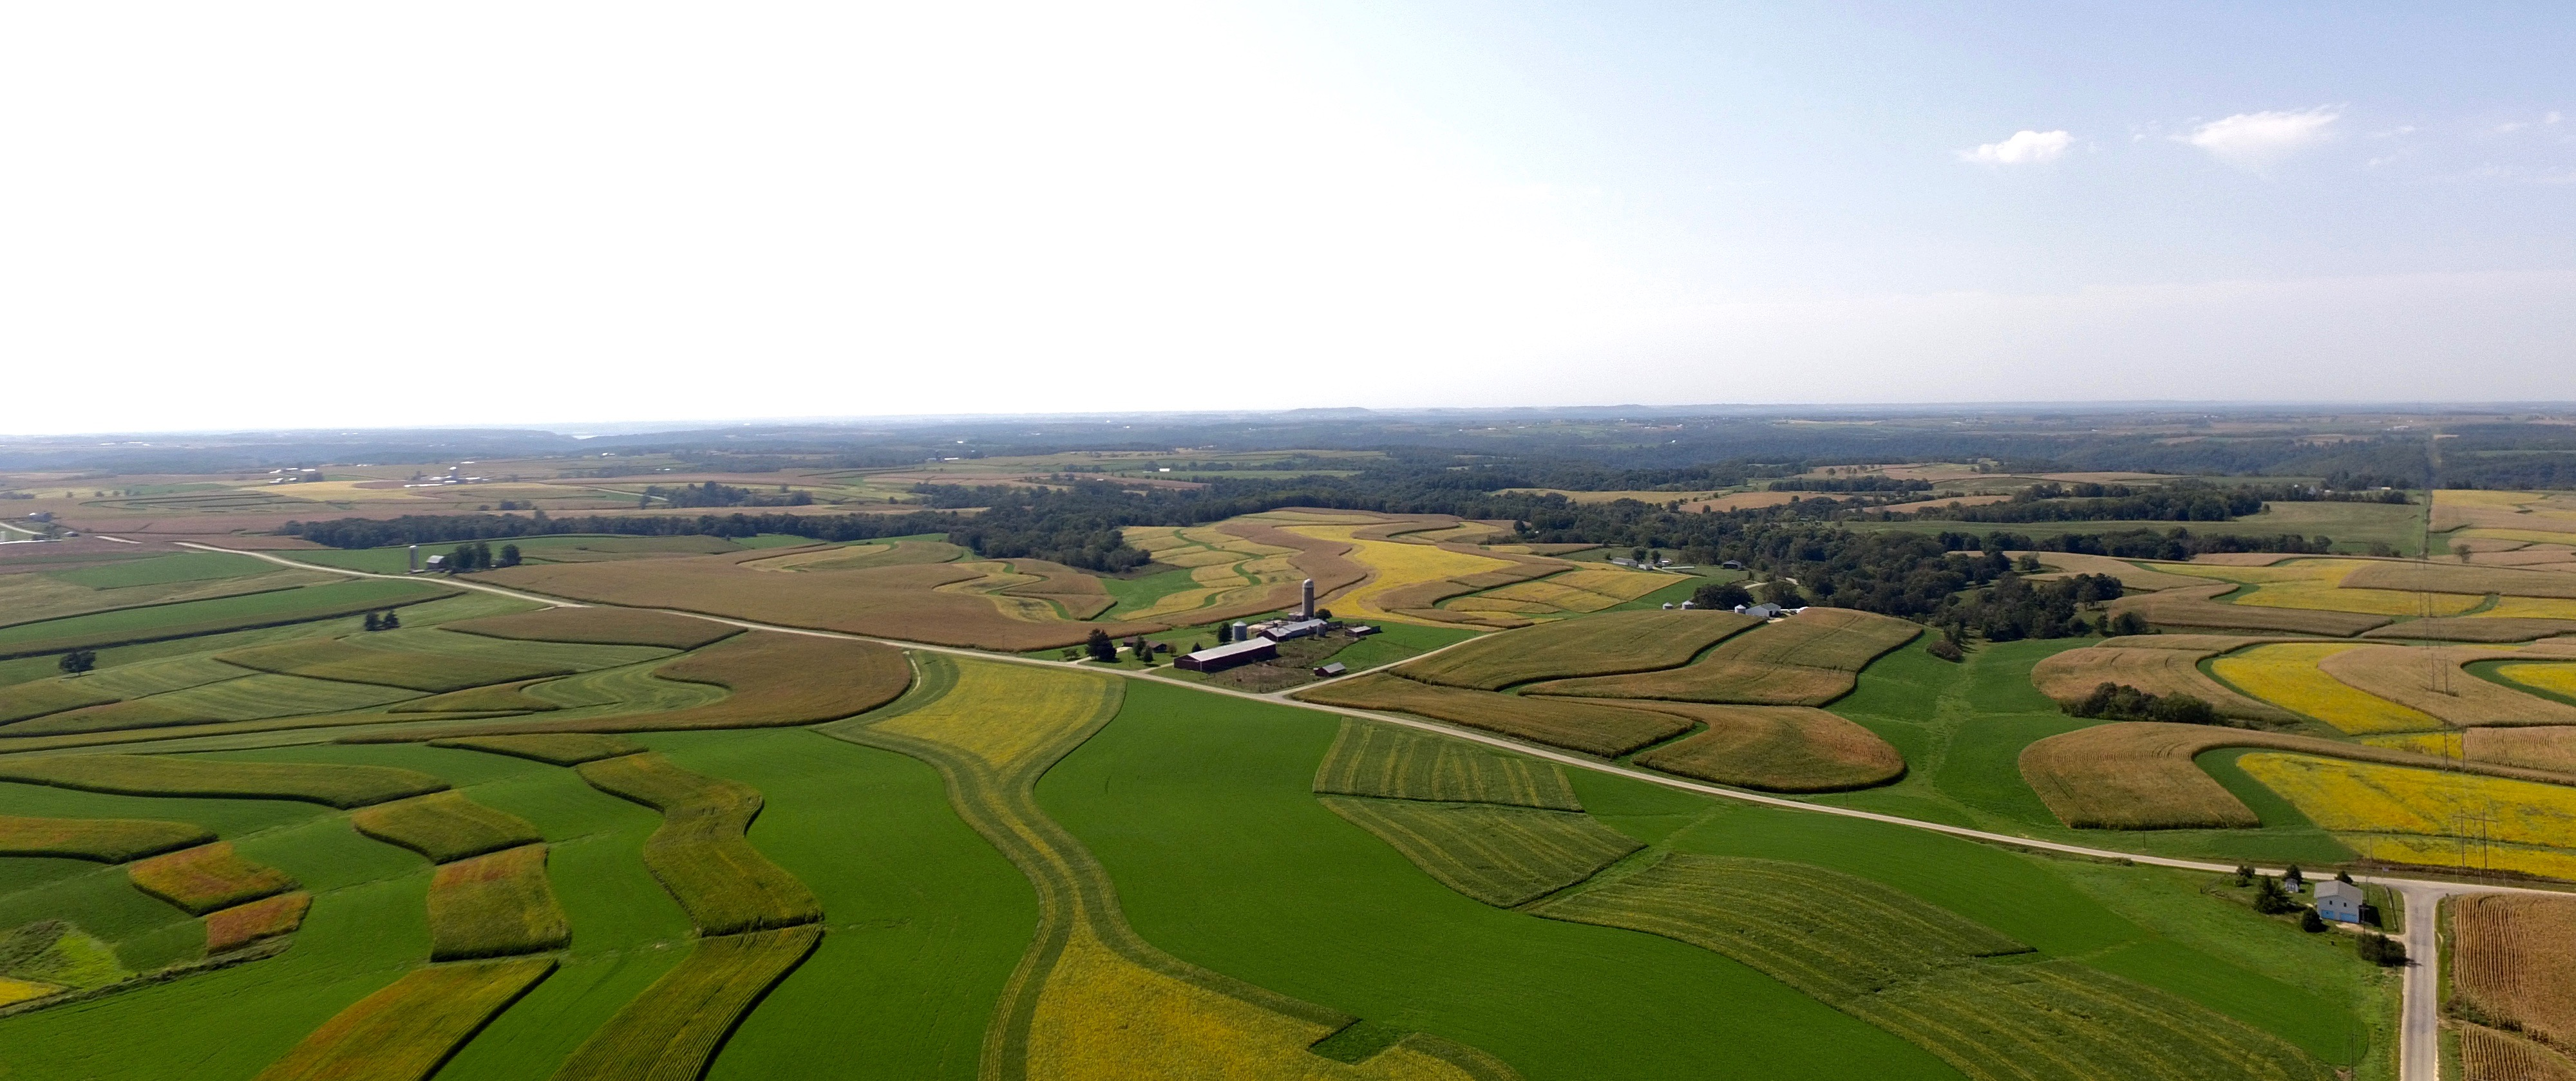 drone services, commercial drone pilot, wi photography, drone rules, uav pilot, uas drone, certified drone pilot, faa drone license, commercial use of drones, drone operator, drone training, aerial drone, local photographers